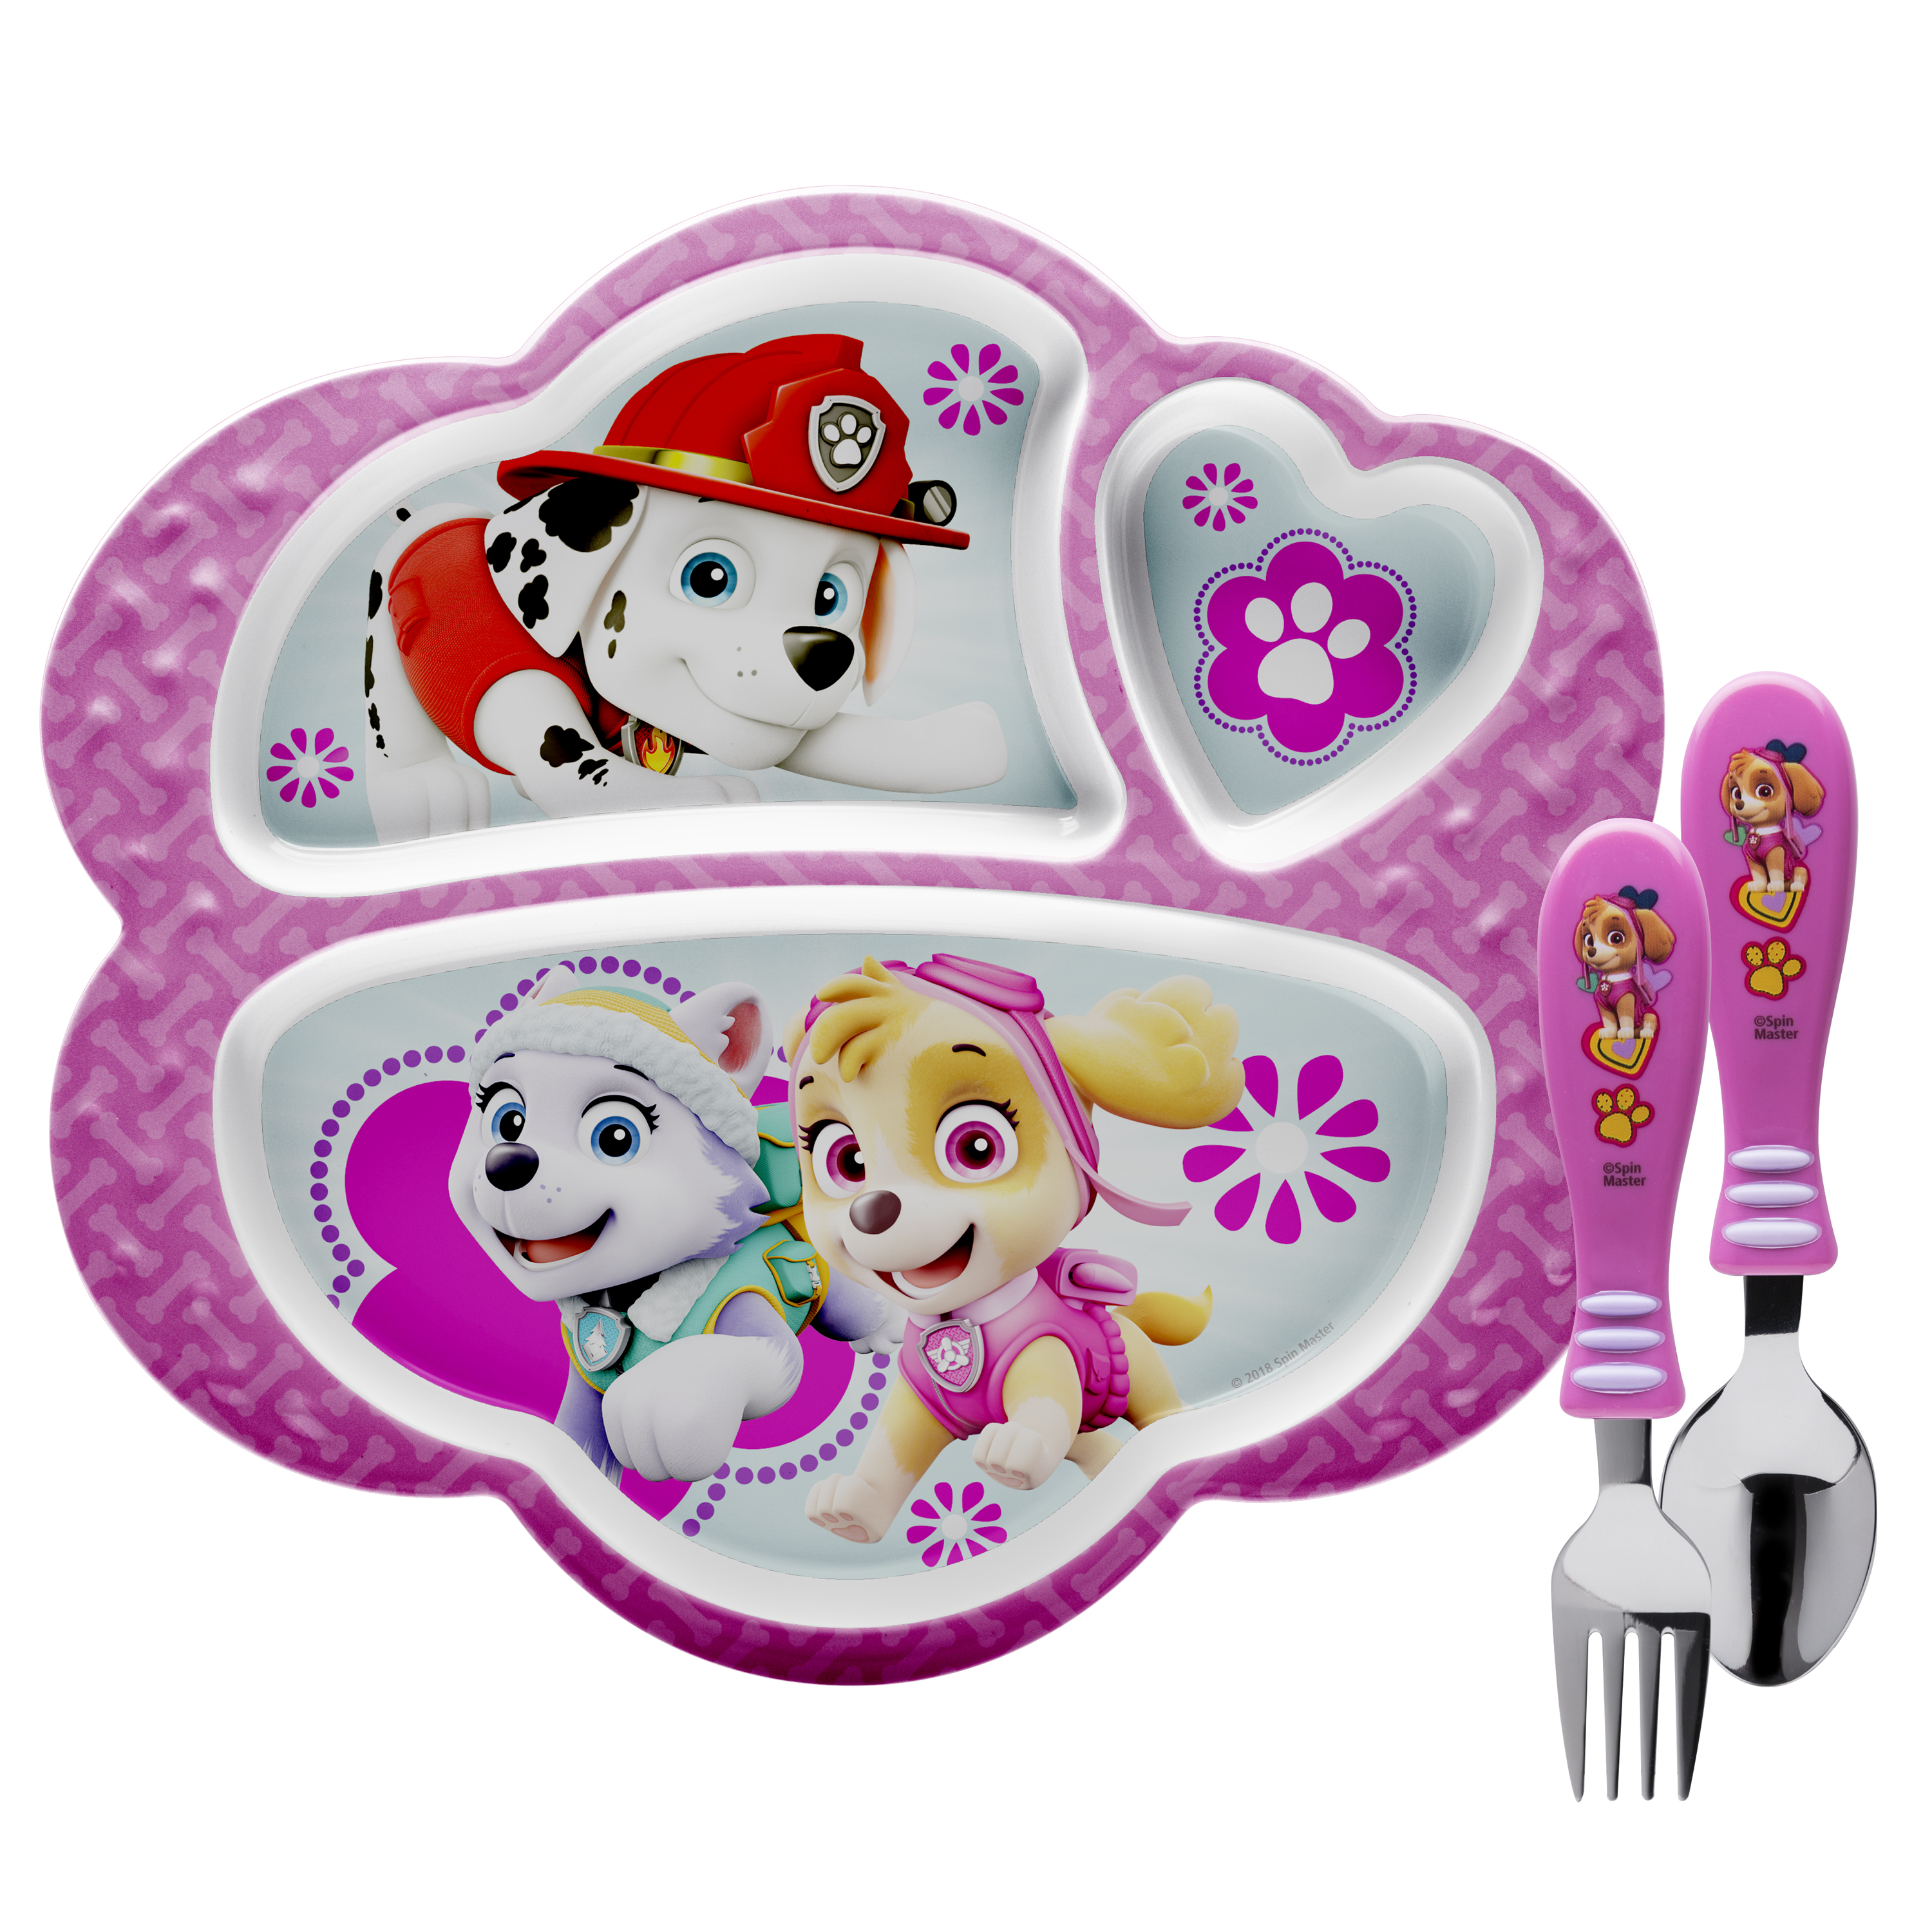 Paw Patrol Kid's Dinnerware Set, Skye, Everest and Marshall, 3-piece set slideshow image 1